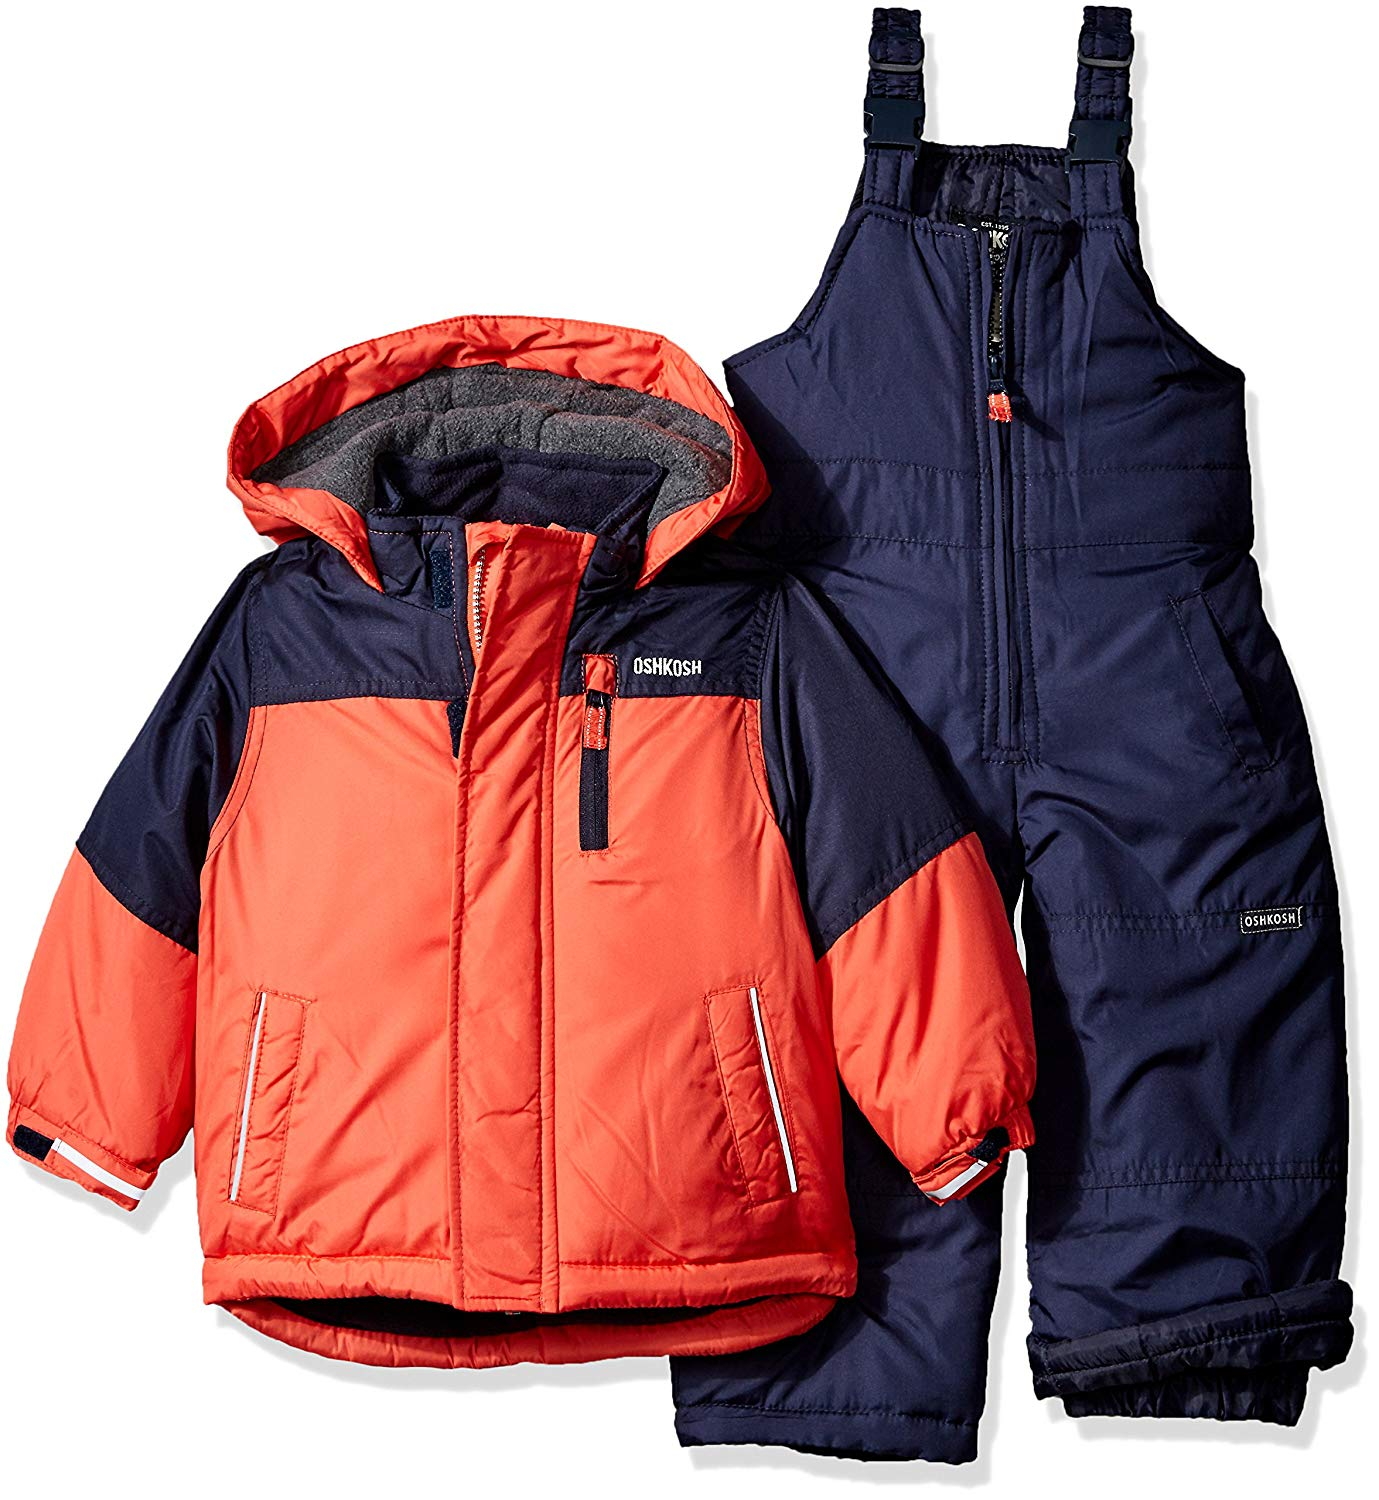 577b820e1 Cheap One Piece Boys Snowsuit, find One Piece Boys Snowsuit deals on ...